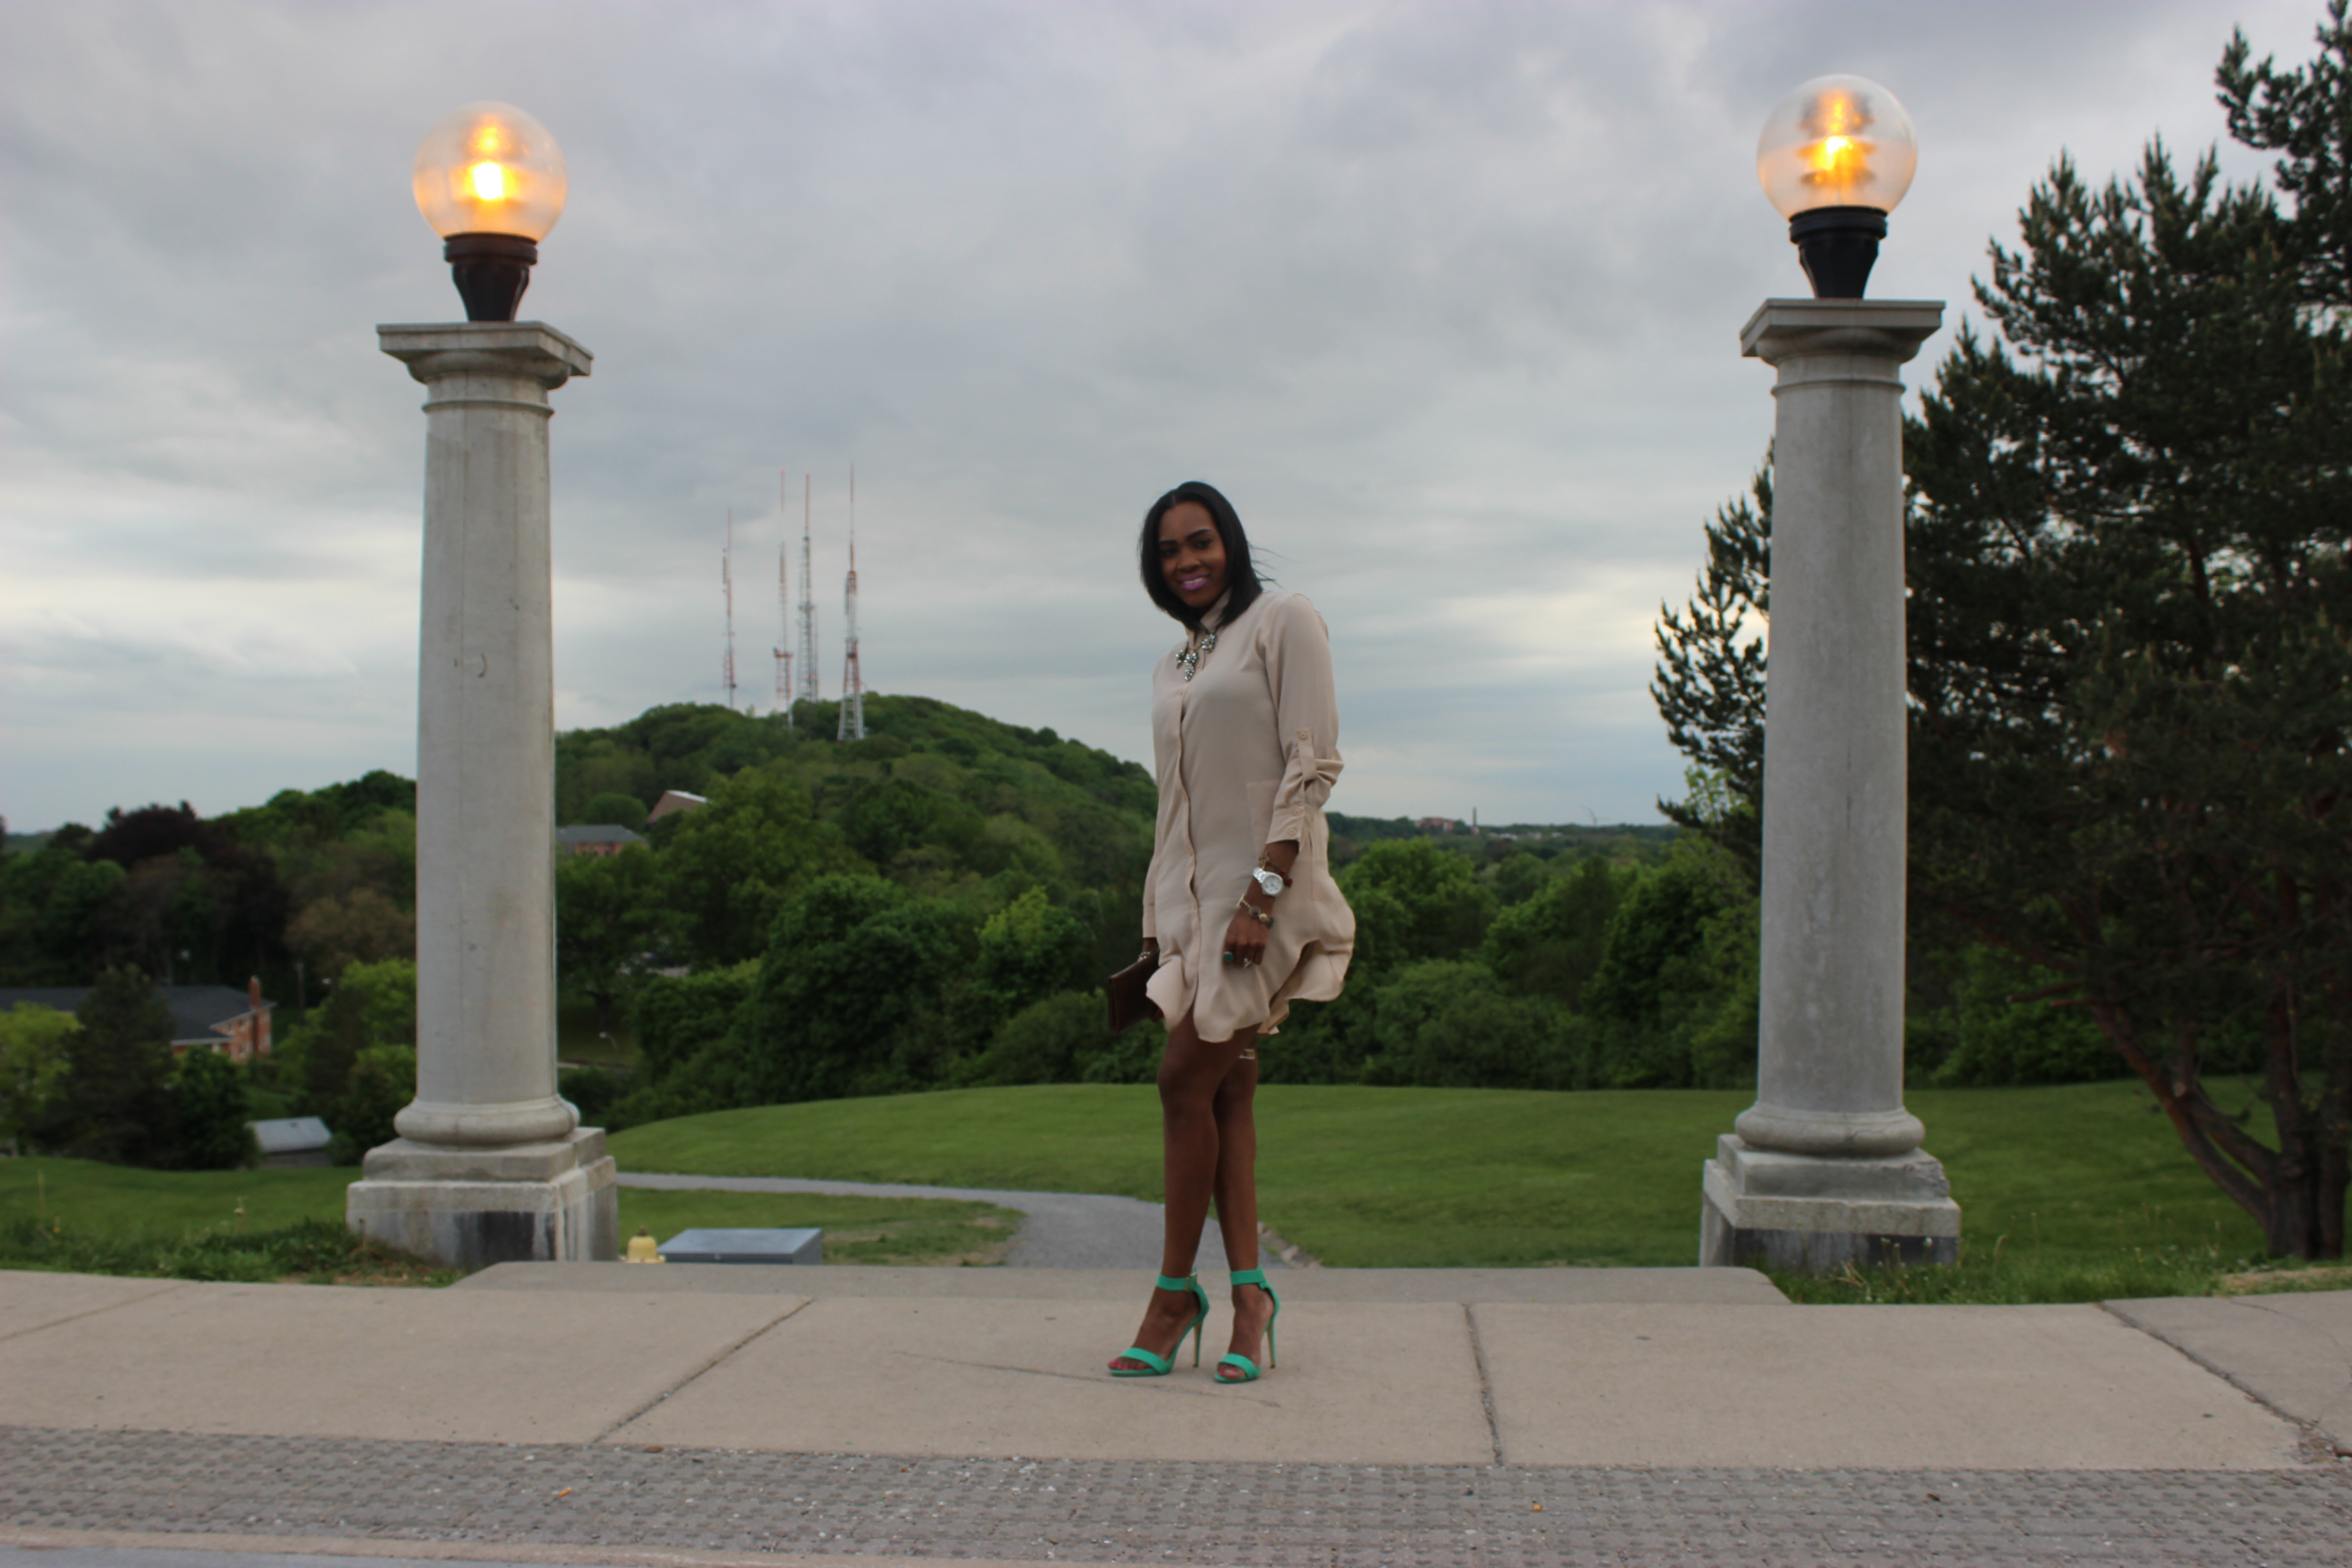 Style-Files-with-Pretty-Price-TJMaxx-Nude-Shirt-Dress-Nude-Tunic-just-fab-Paean-seamfoam-mint-green-ankle-strap-sandals-forever-21-distressed-cut-off-shorts-Pink-turban-justfab-Taesha-leopard-print-lace-up-heel-sandals-14